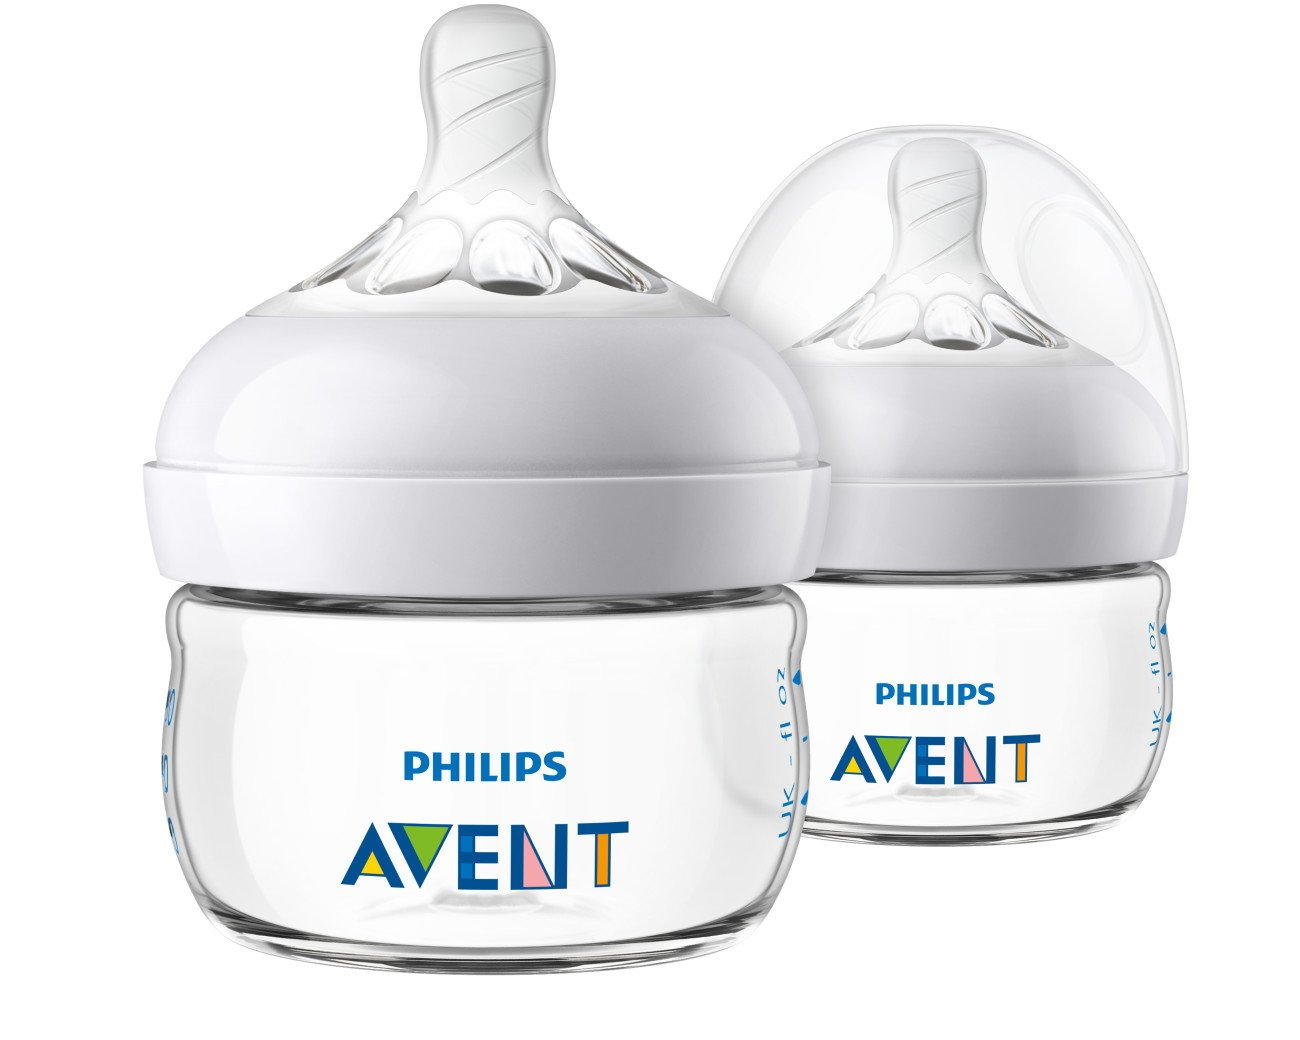 Philips Avent Natural Baby Bottle, Clear, 2oz, 2pk, SCF019/25 by Philips AVENT